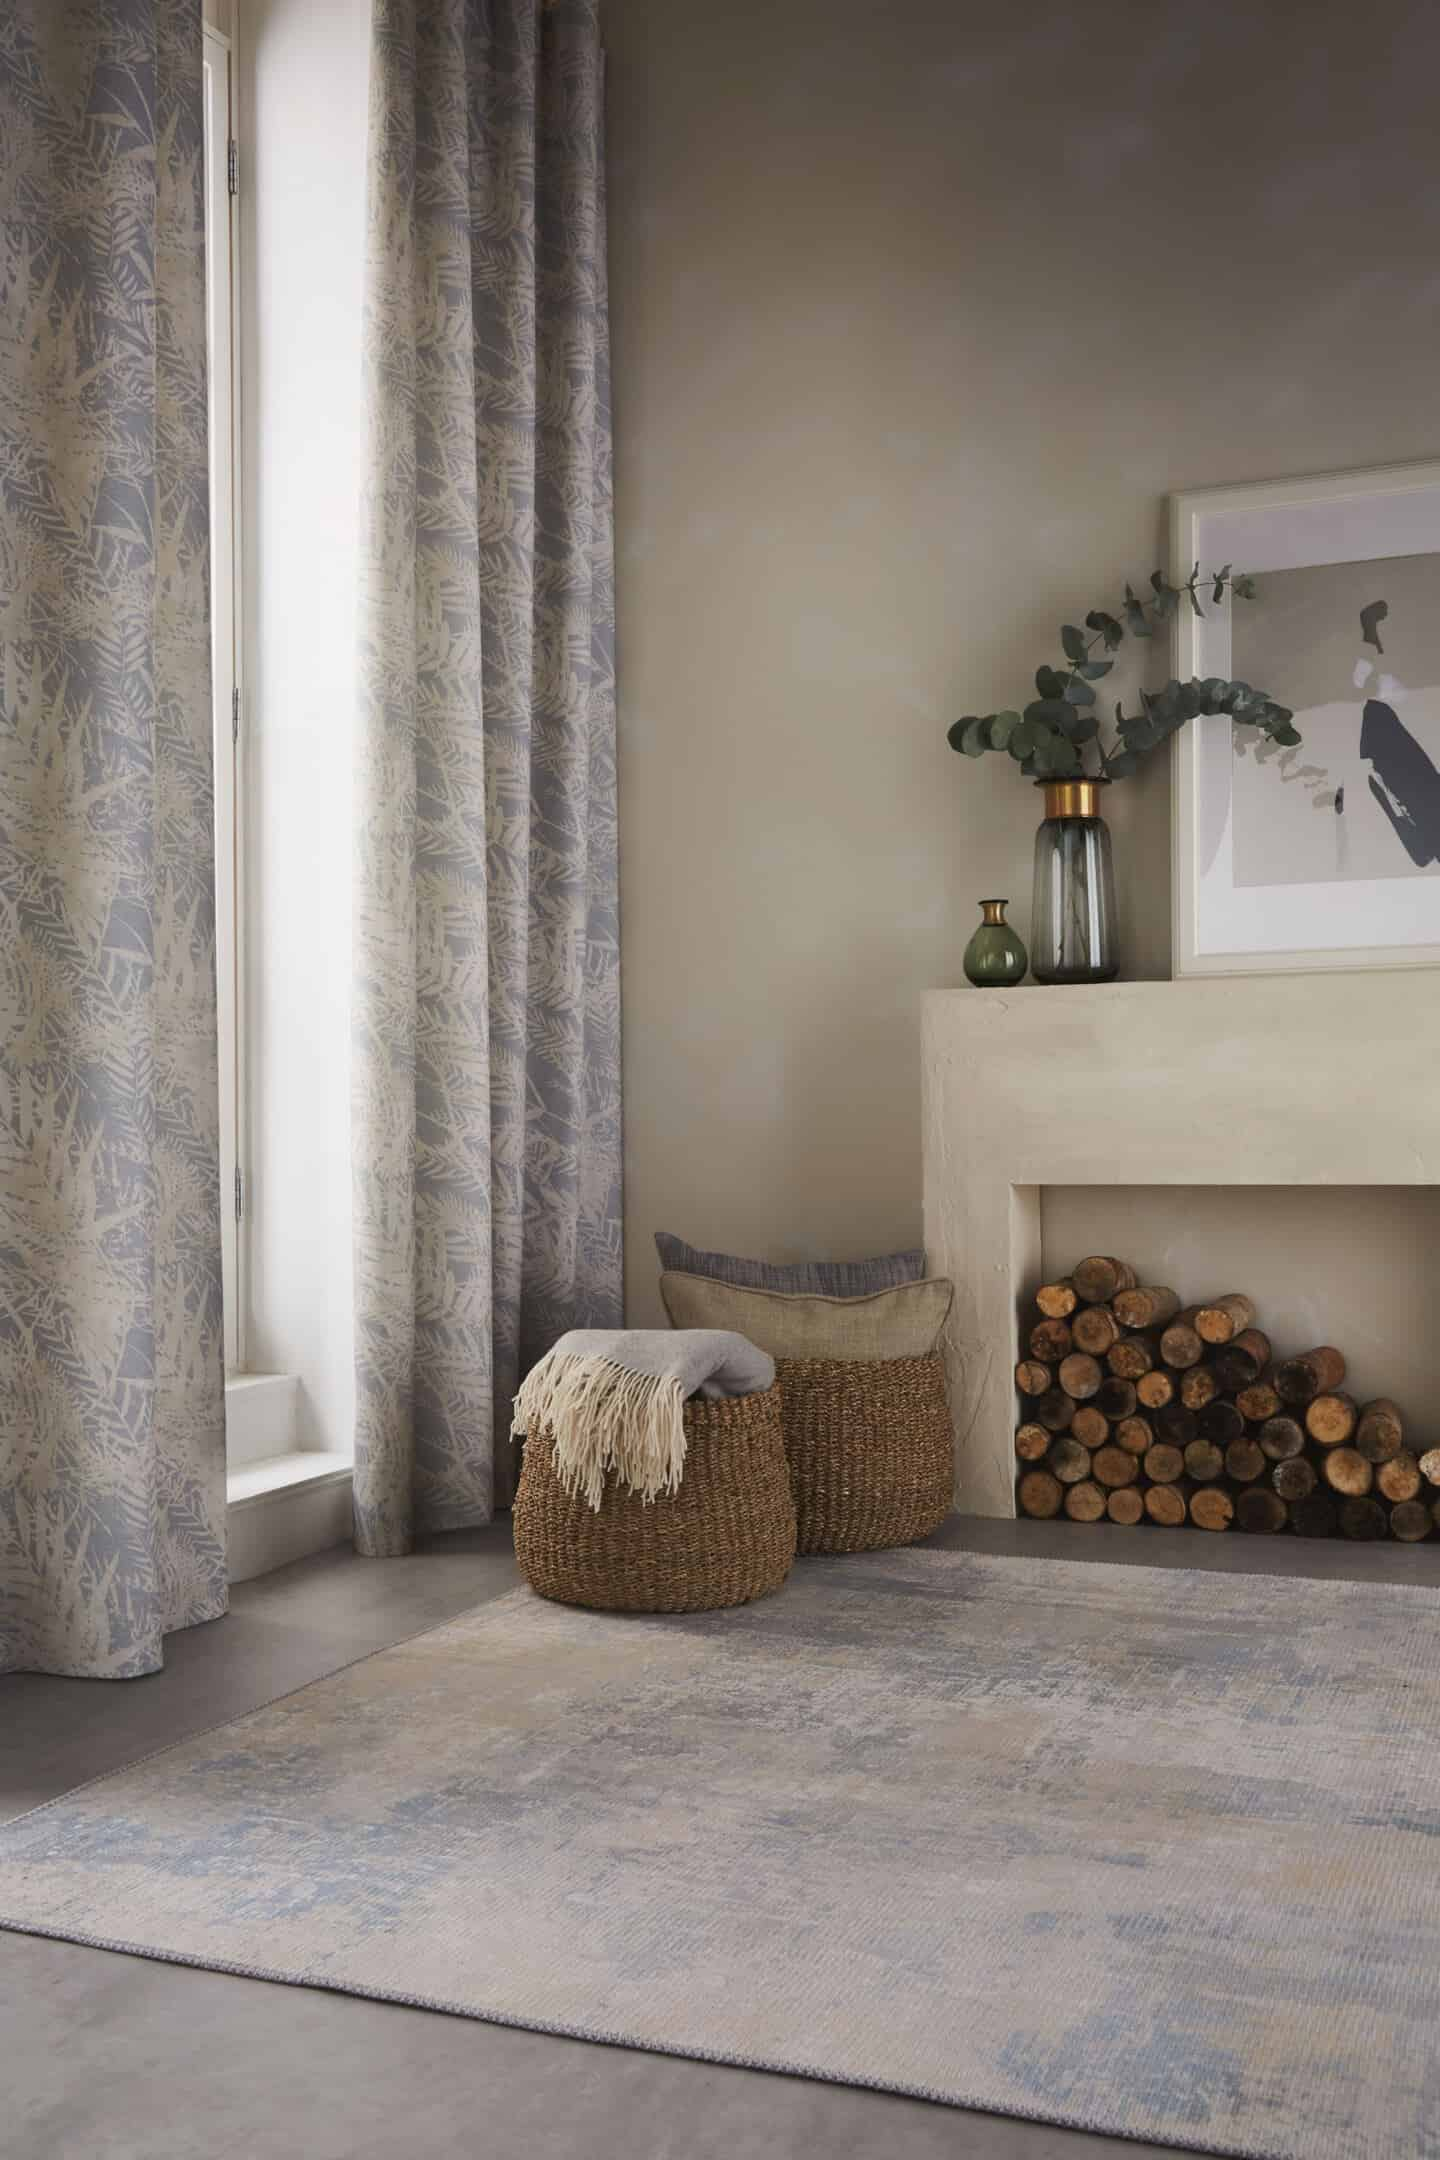 Textured Lives. Using texture in interiors to bring your home to life.  Curtains with a nature-inspired pattern on them hang in a doorway. Two baskets next to a fireplace full of throws blankets and cushions.